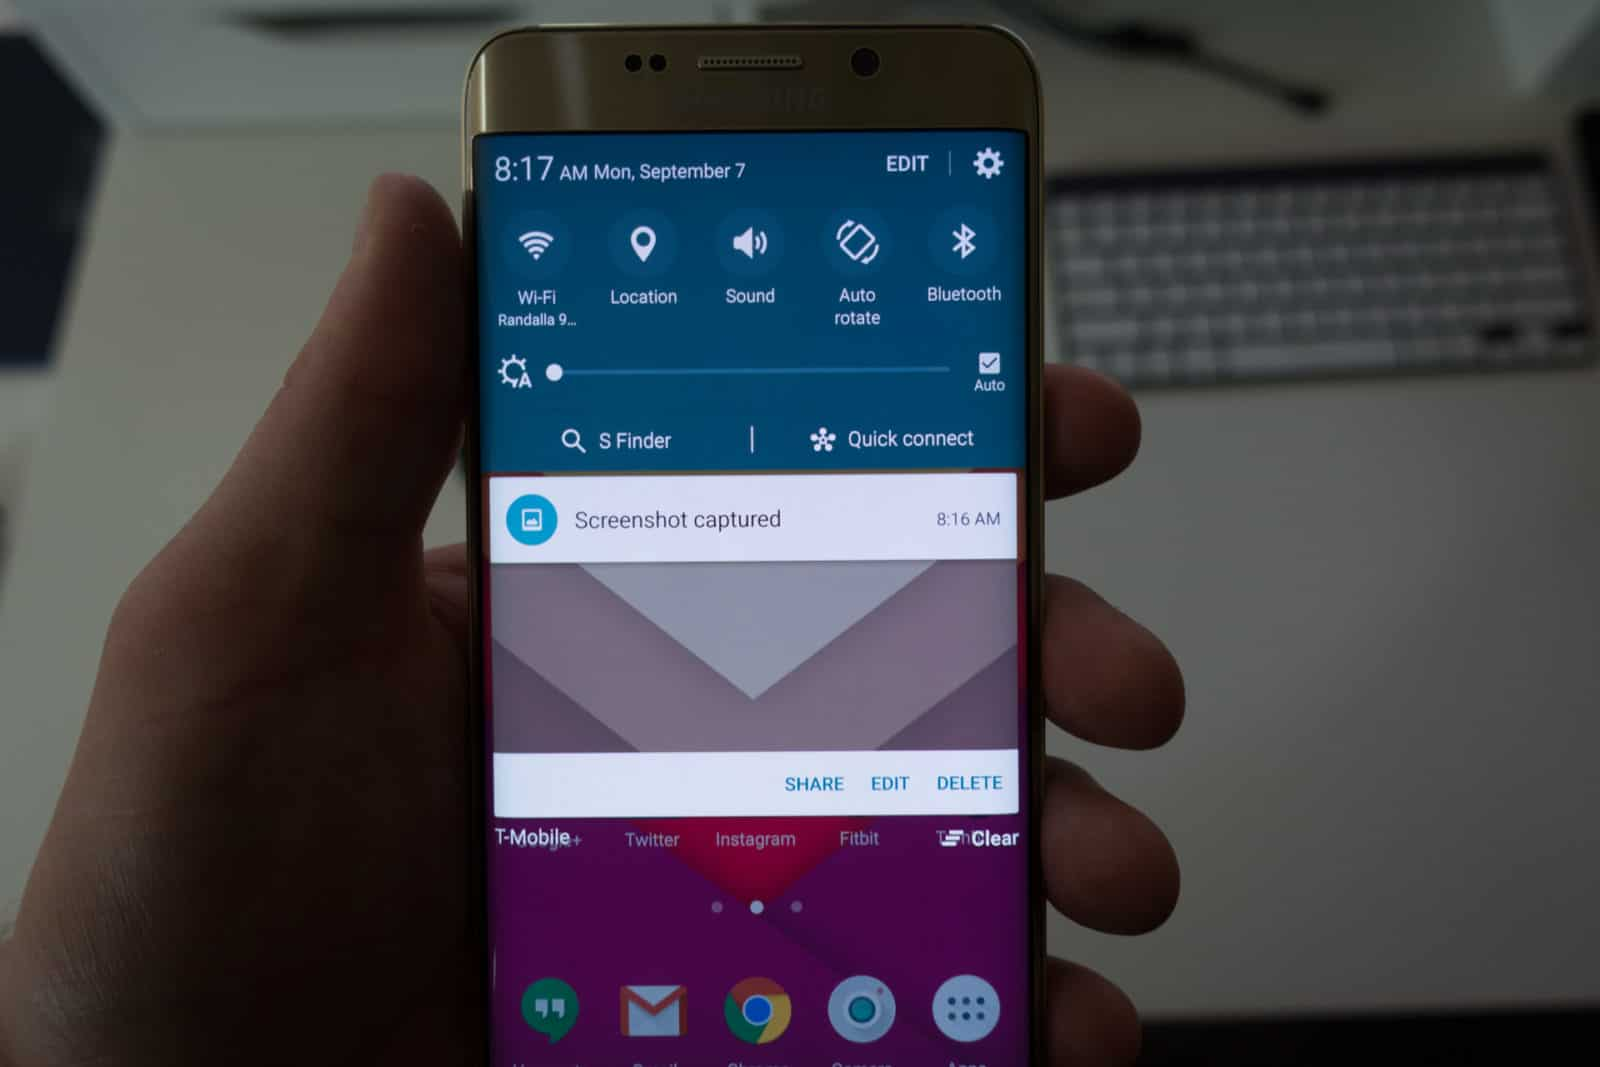 Samsung-Galaxy-S6-Edge-Plus-Screenshot-AH-1